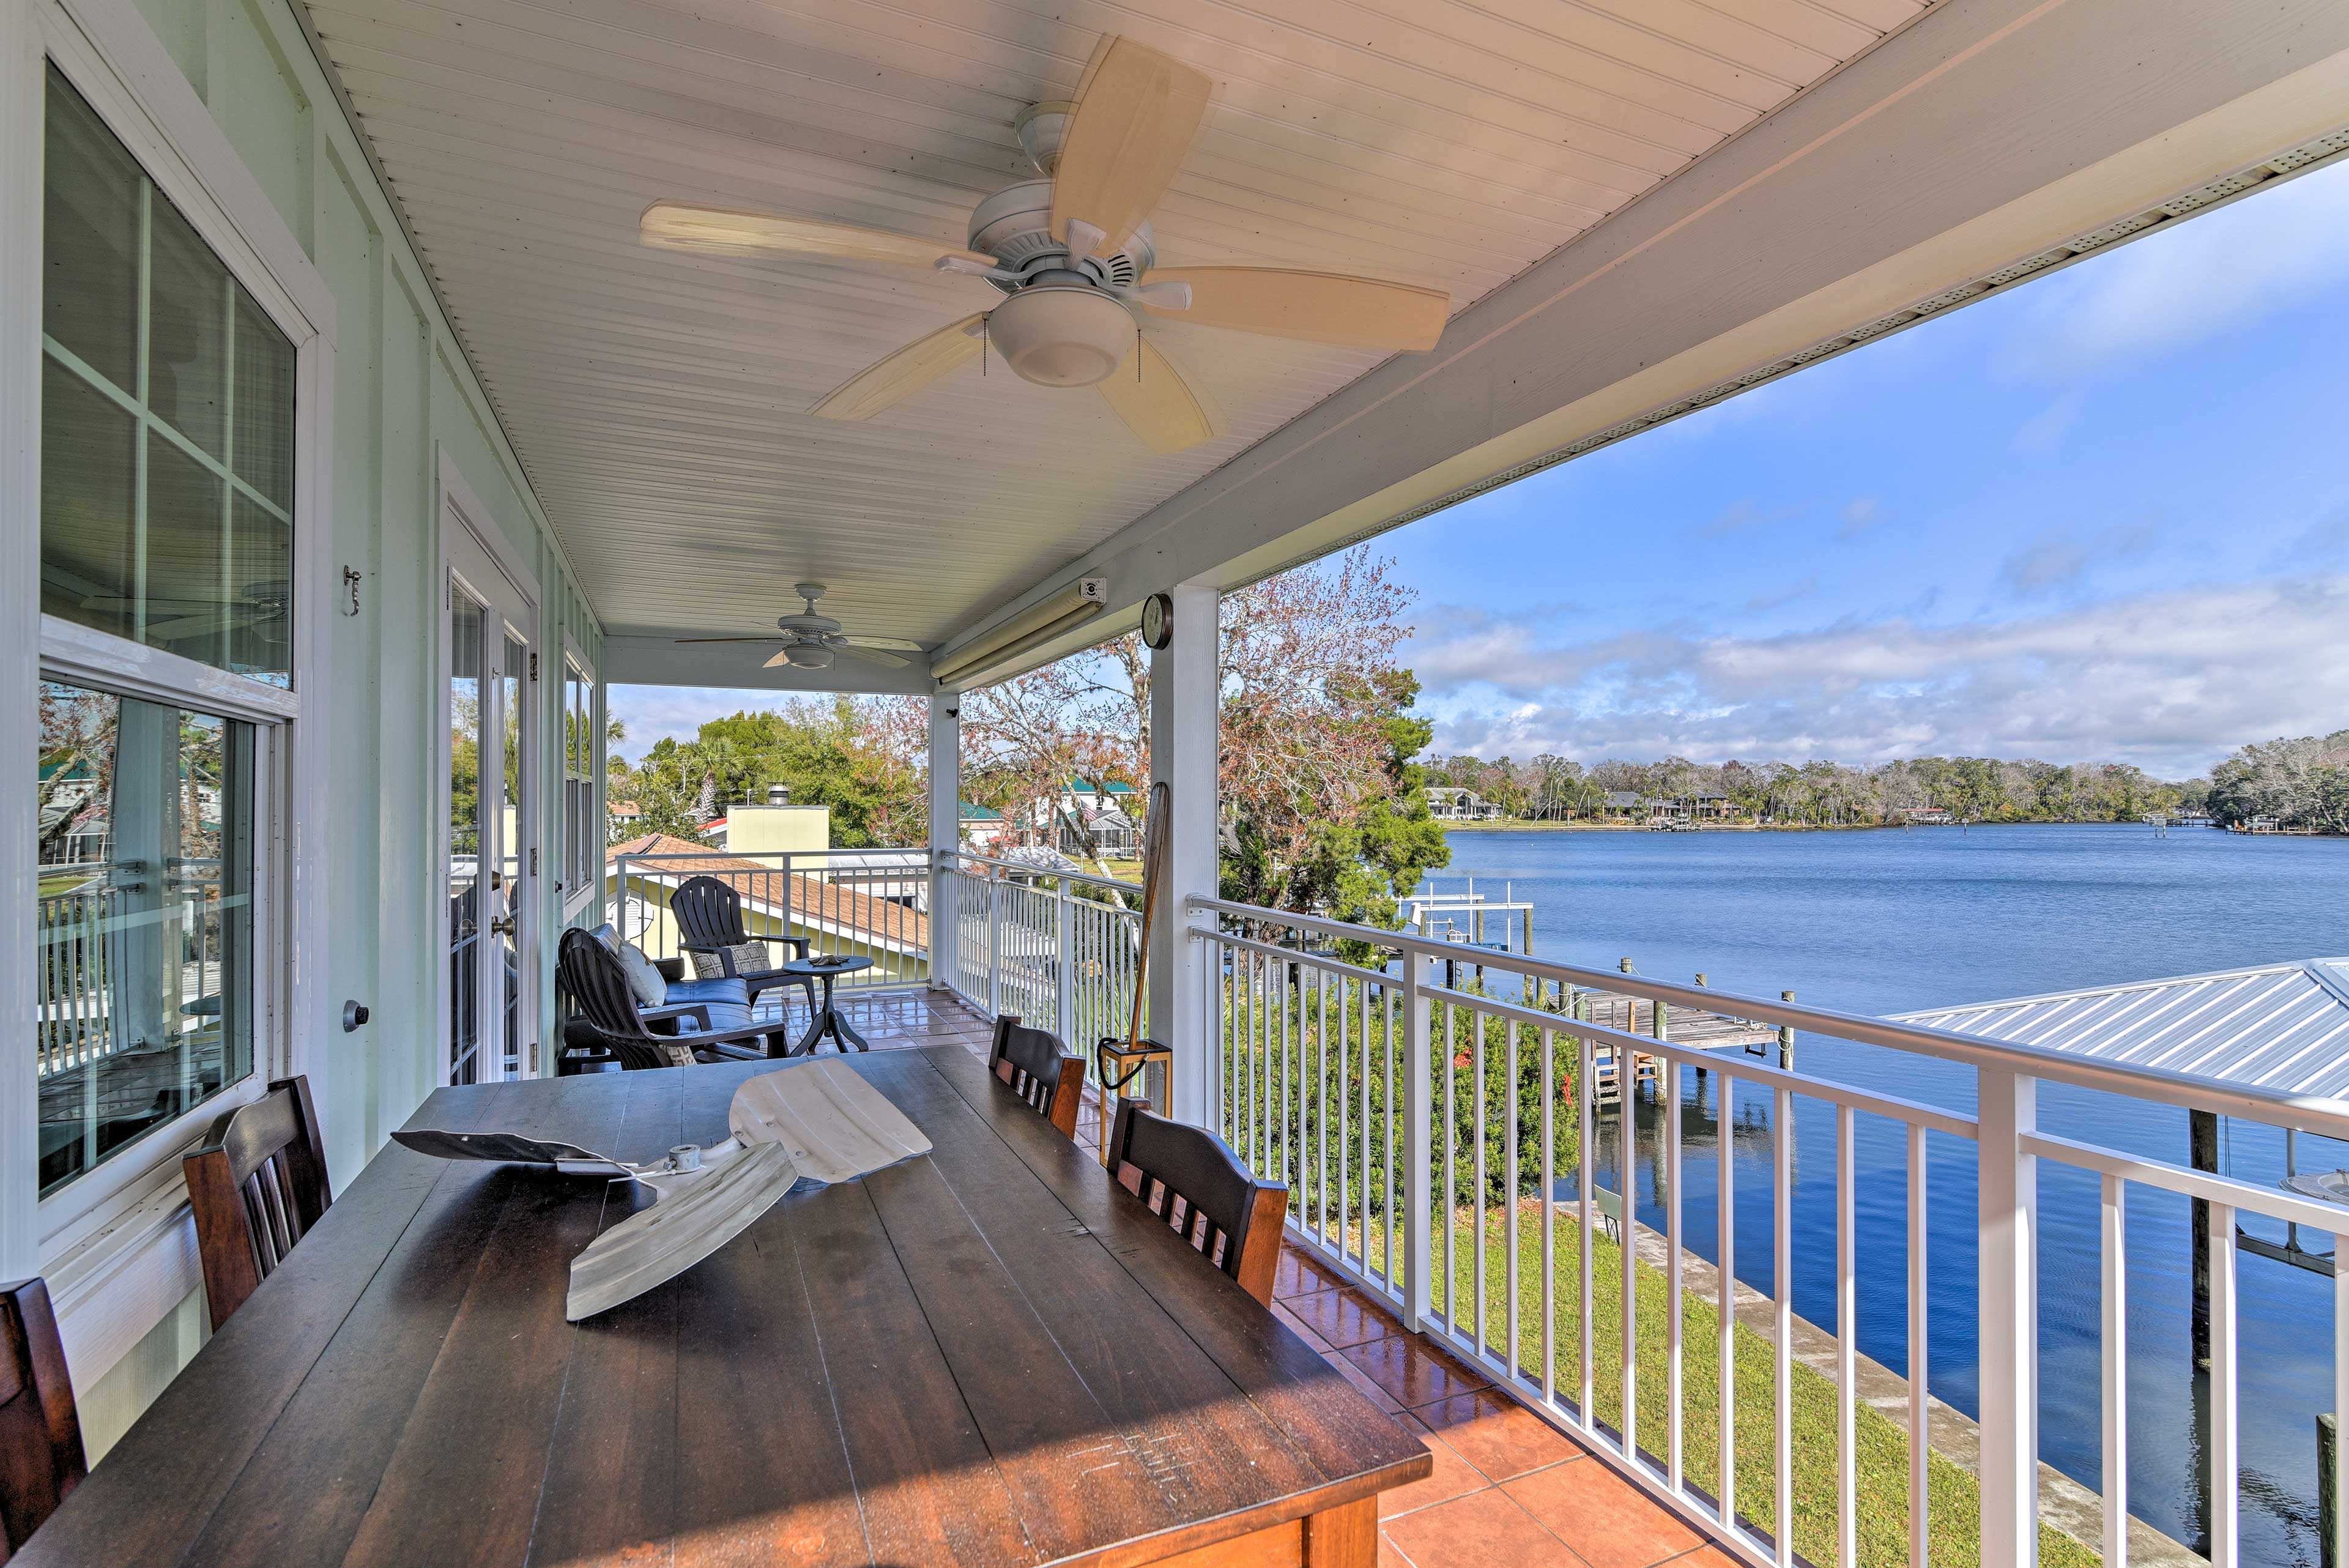 This 1,300-square-foot vacation rental home sits on the Homosassa River shore.